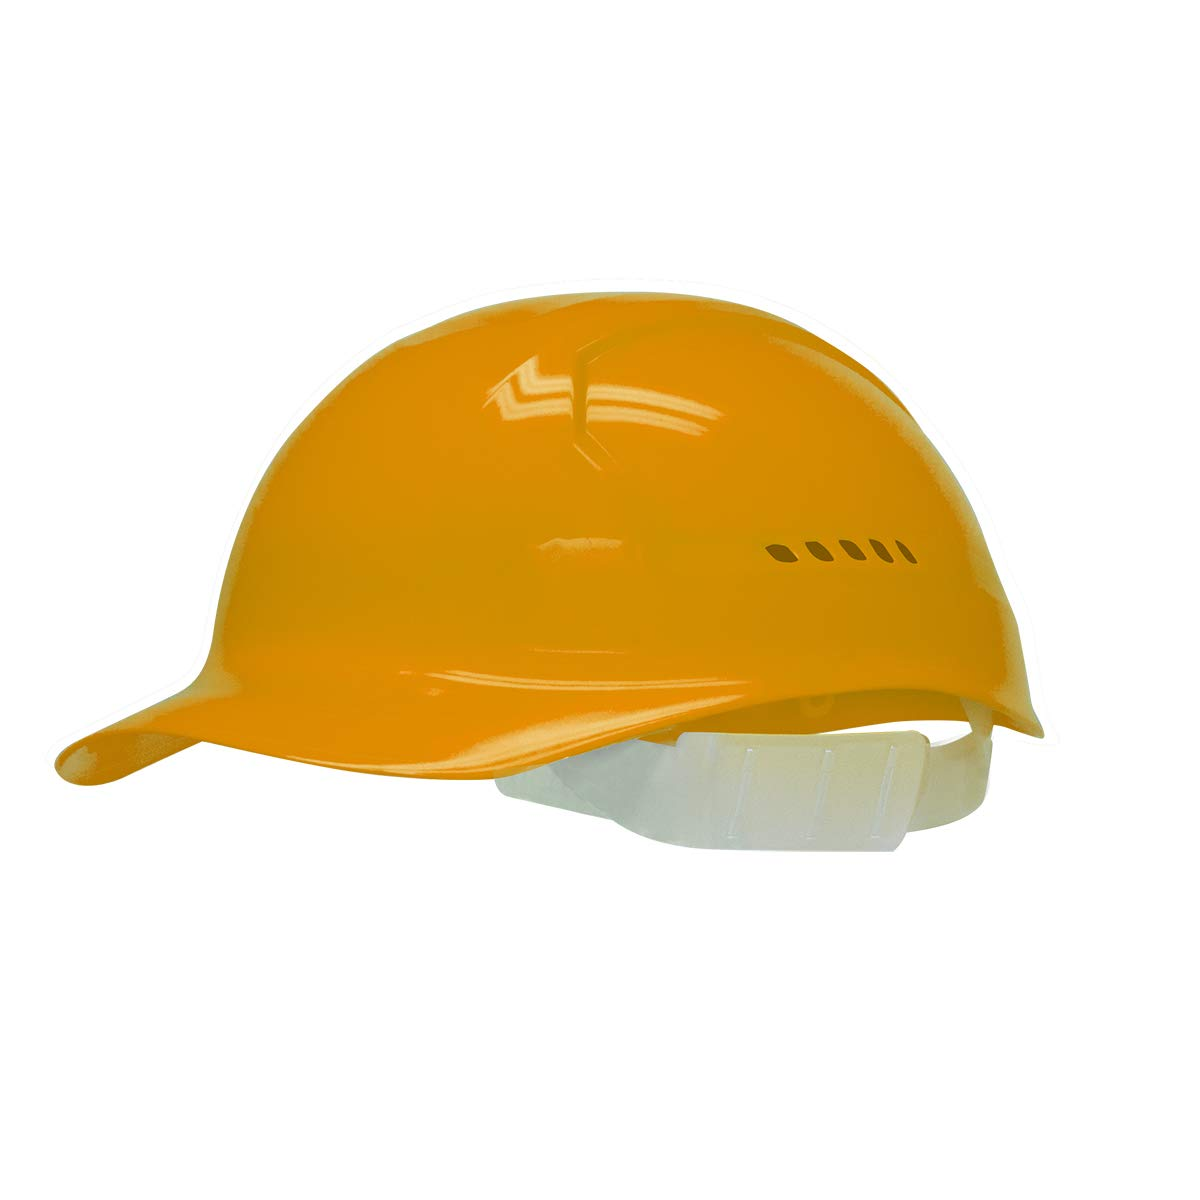 Bullard Orange HDPE Cap Style Bump Cap With Slidelock Suspension And Vinyl Browpad - Pack of 25 by BULLARD (Image #1)